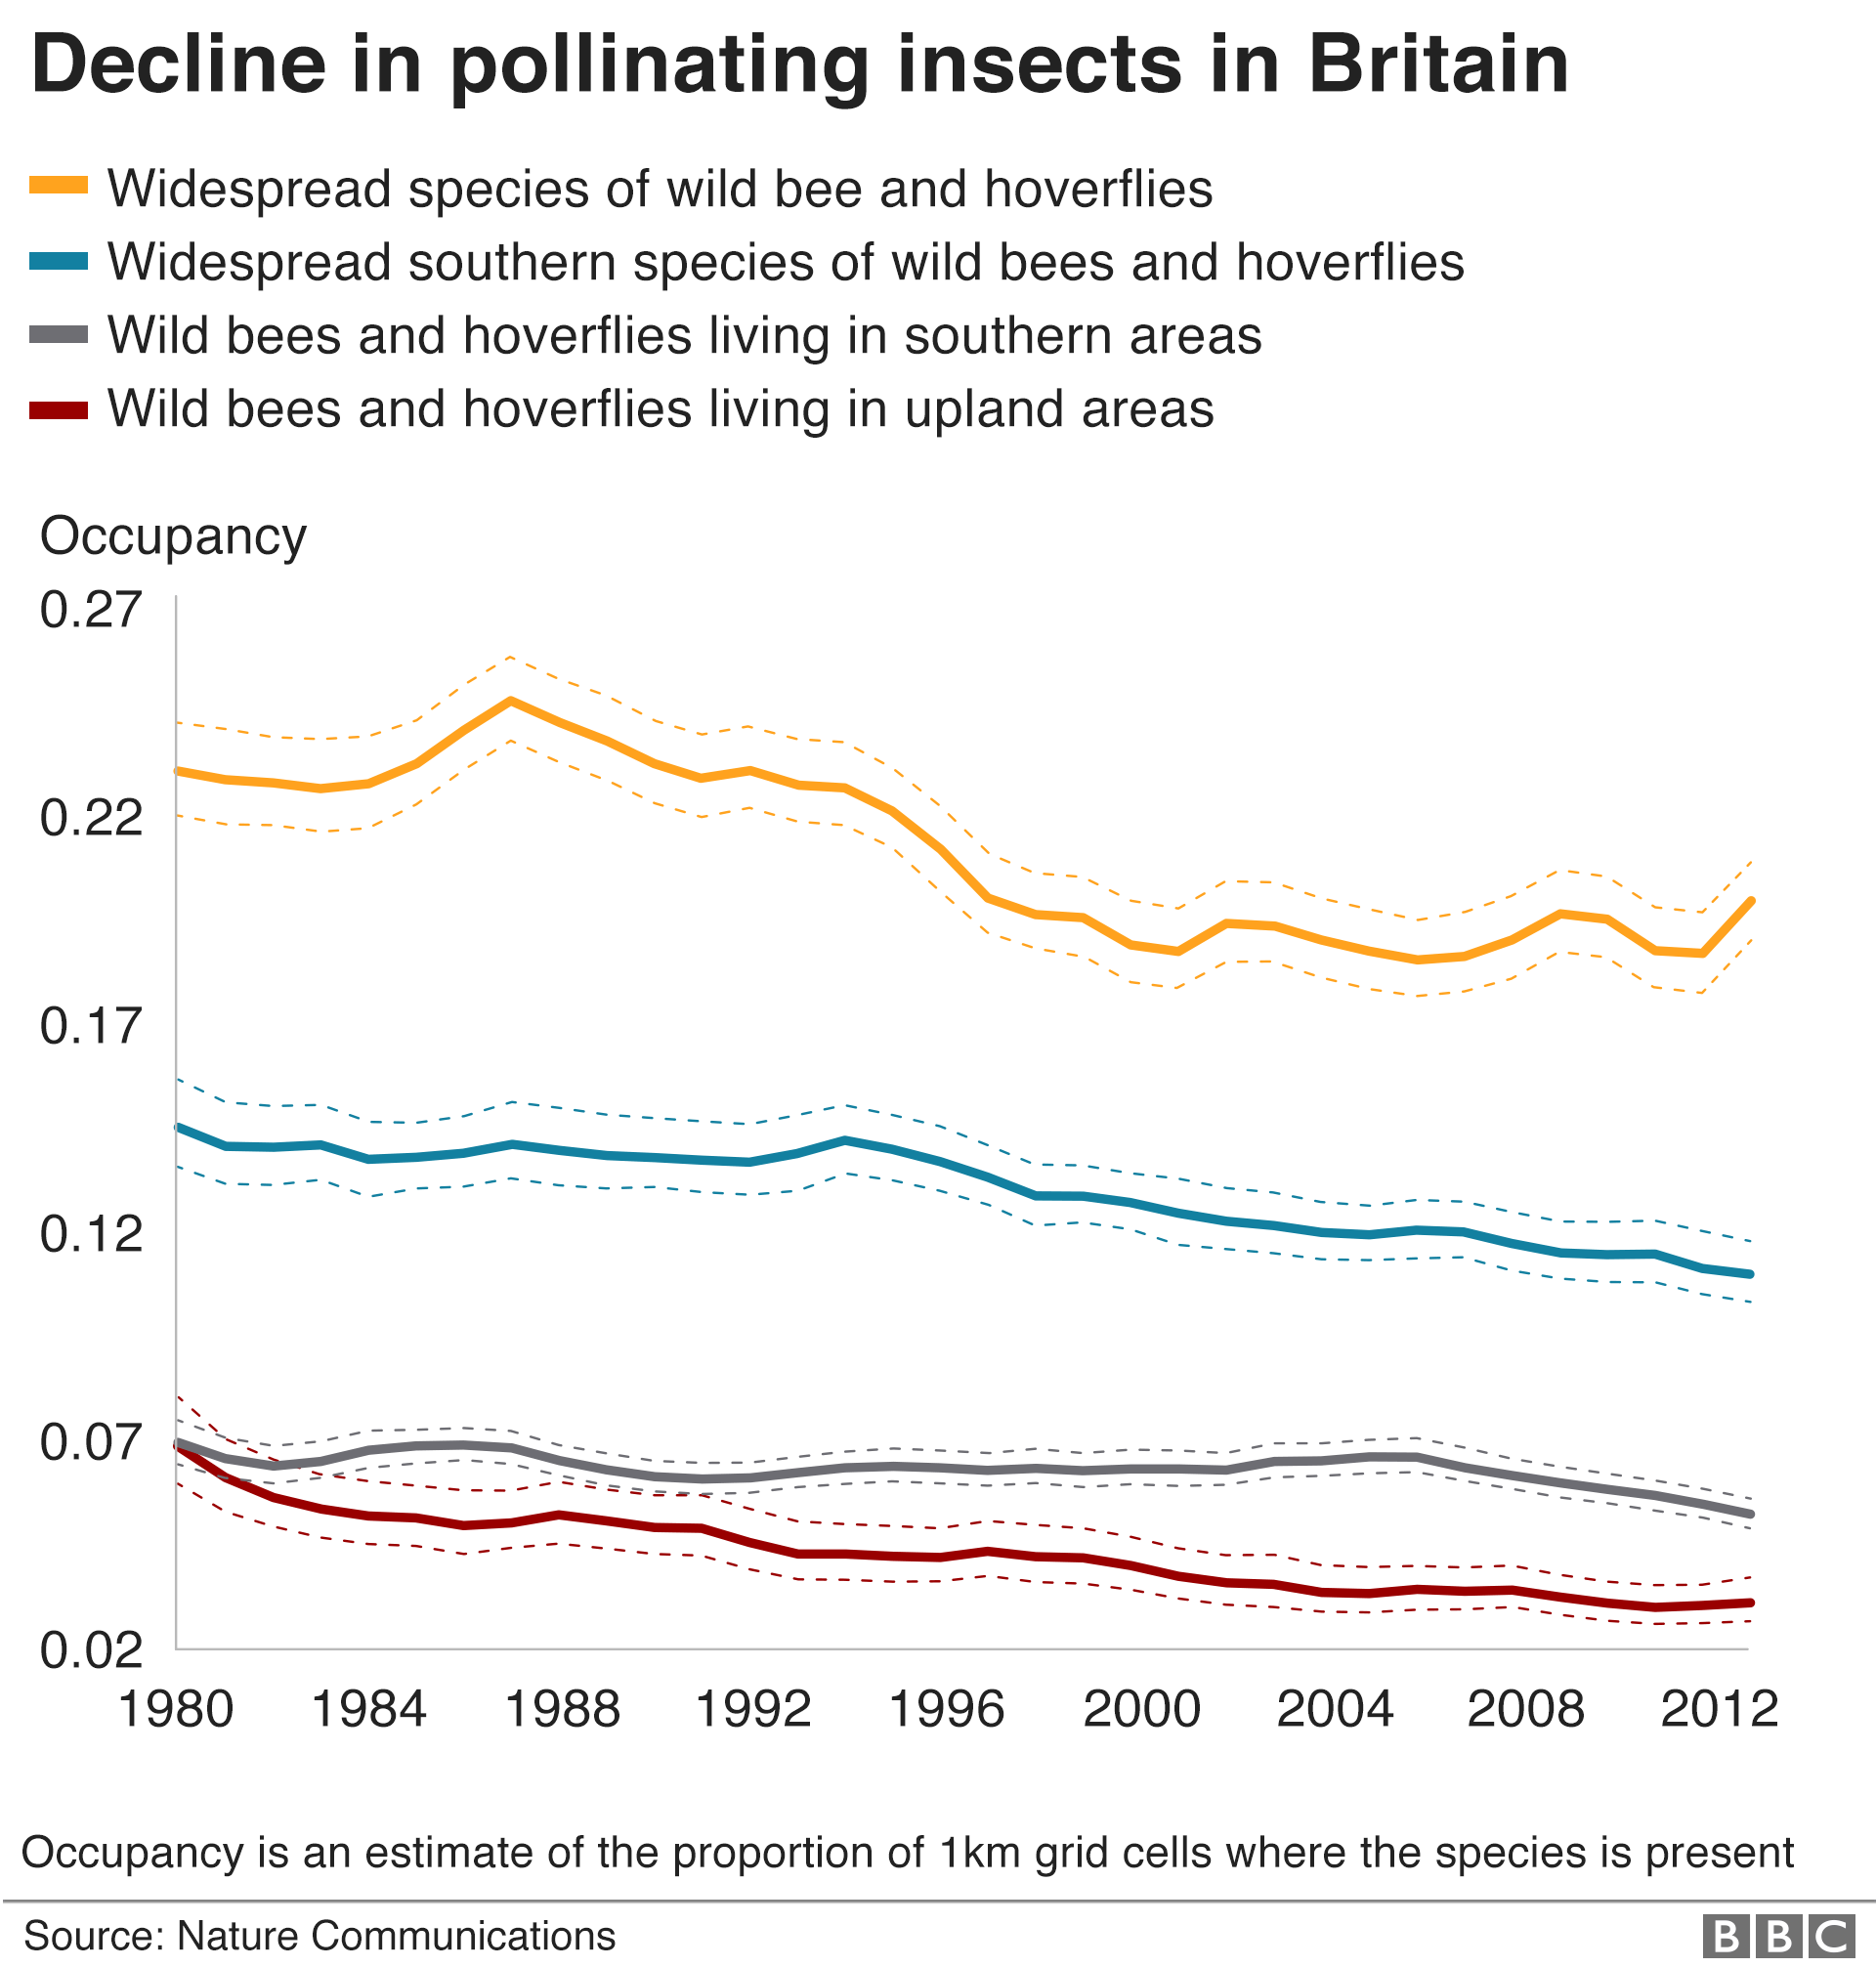 Decline of pollinating insects in Britain